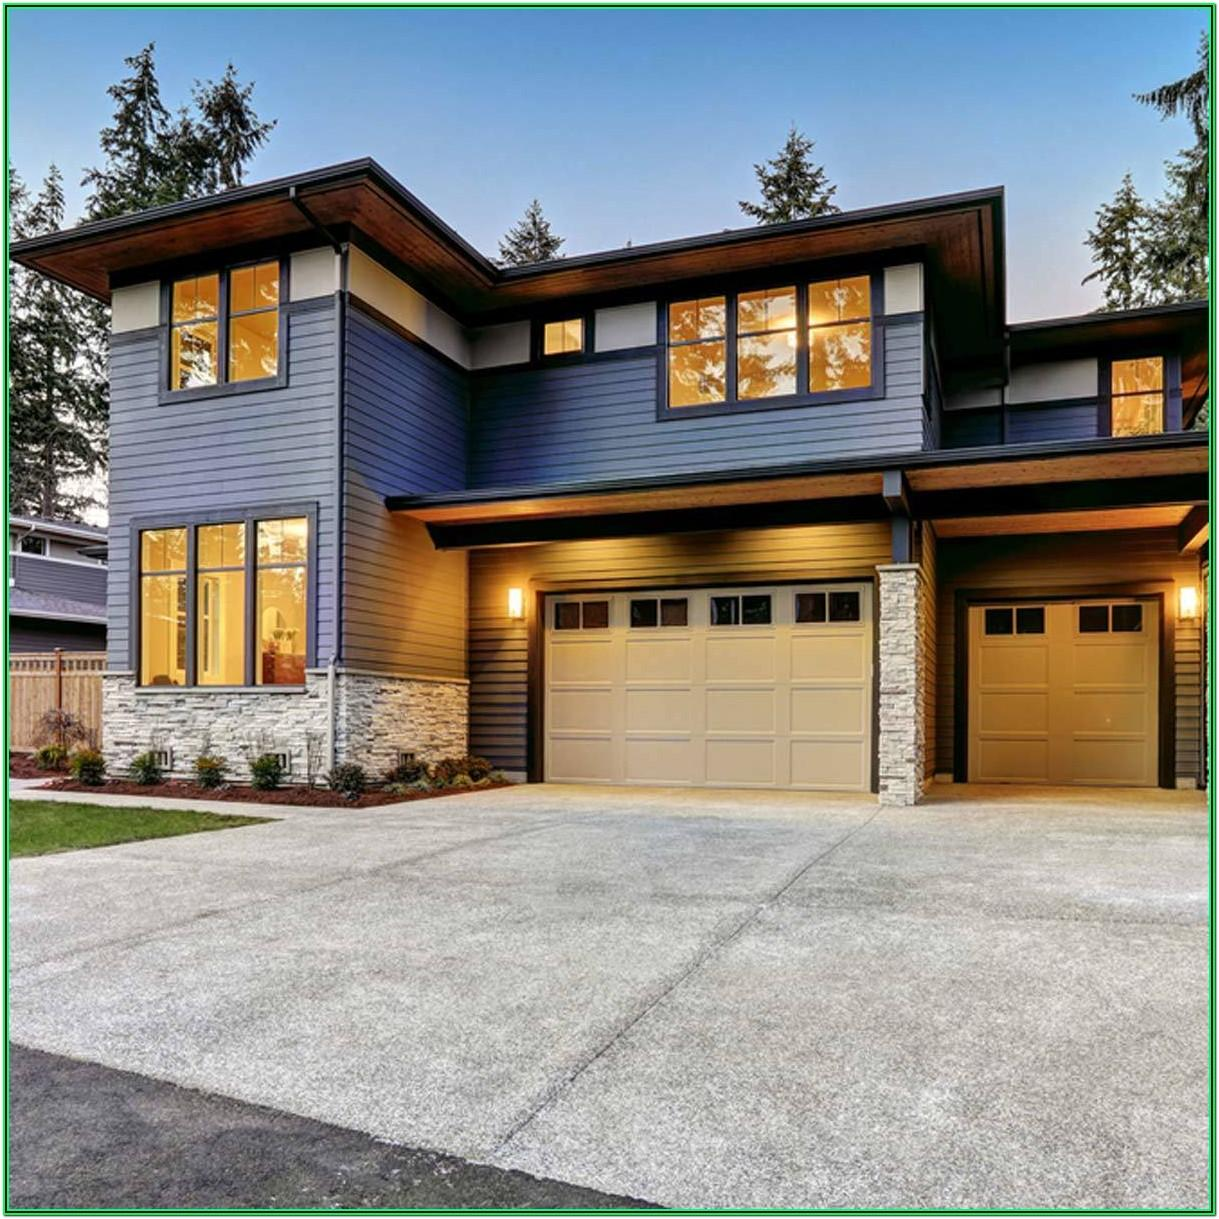 Best Exterior Colors To Sell A House 2018